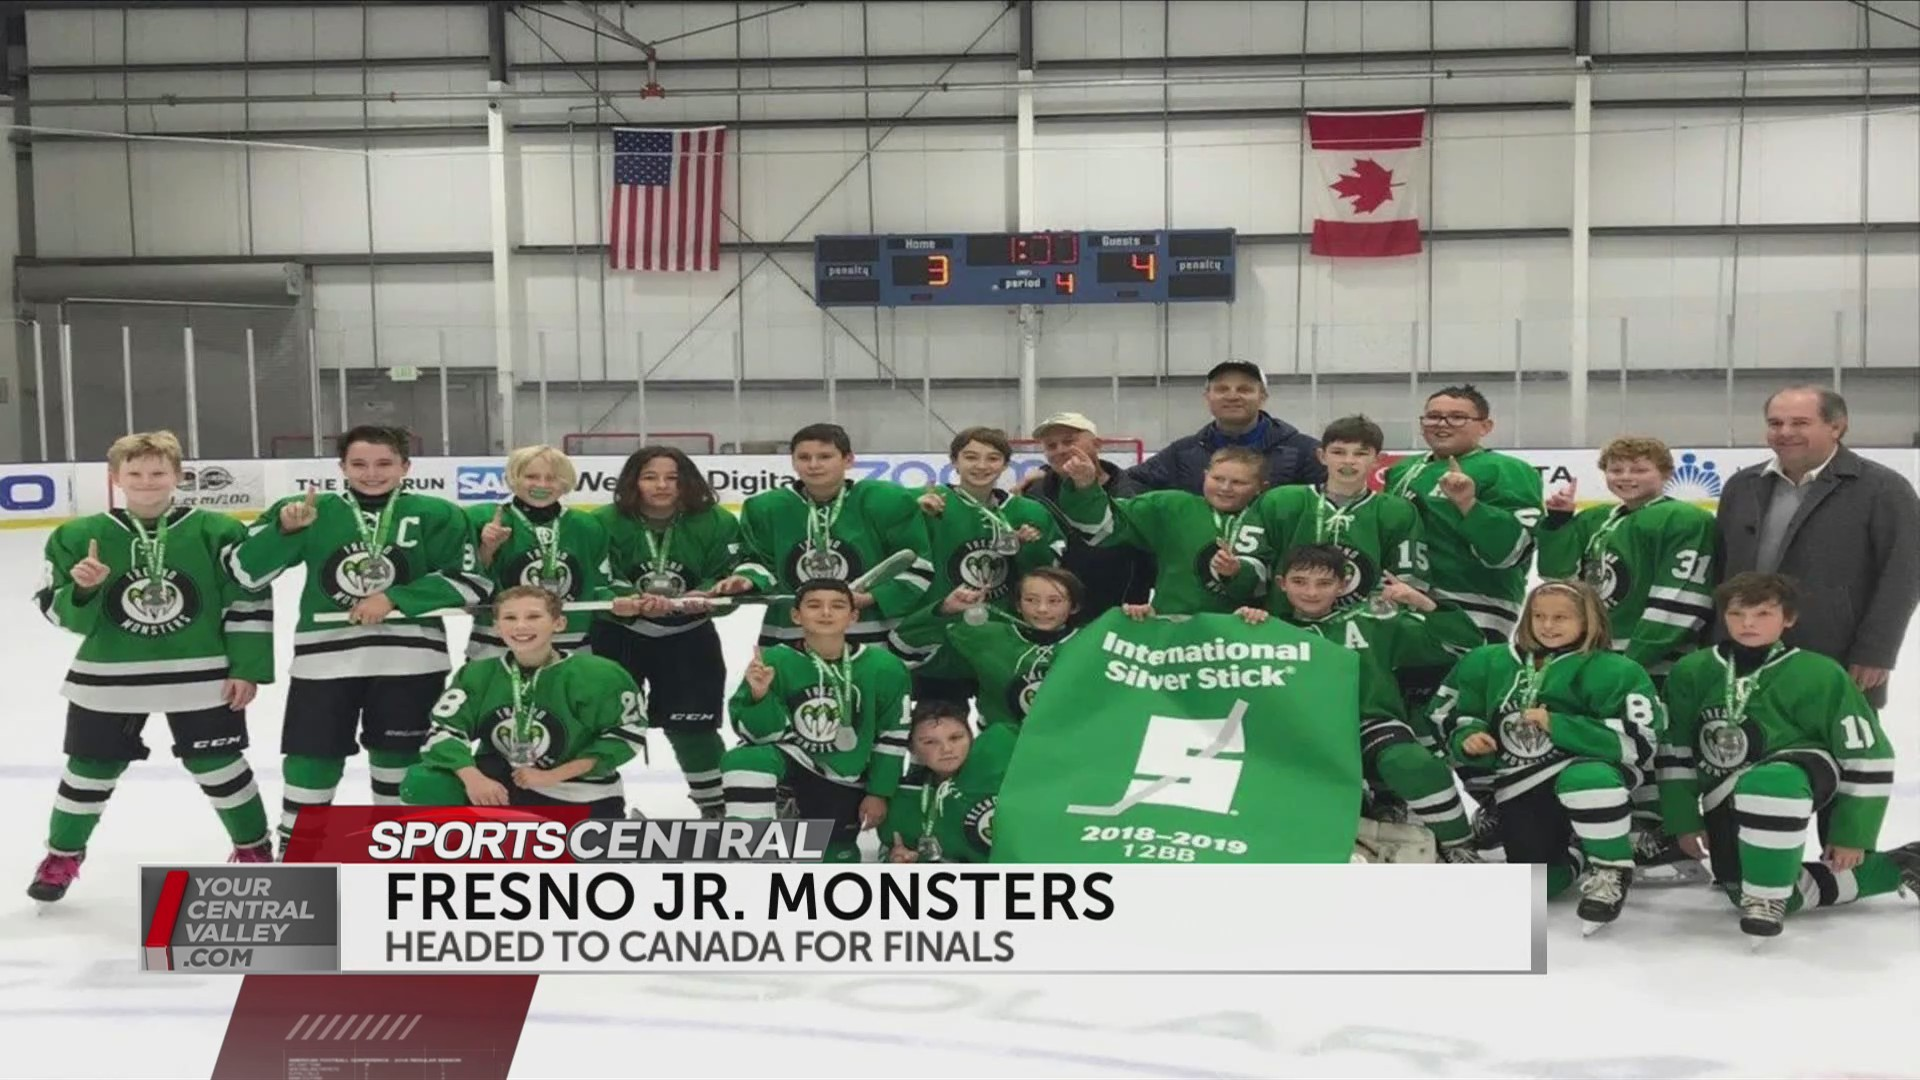 Fresno_Jr__Monsters_headed_to_Canada_0_20181207073559